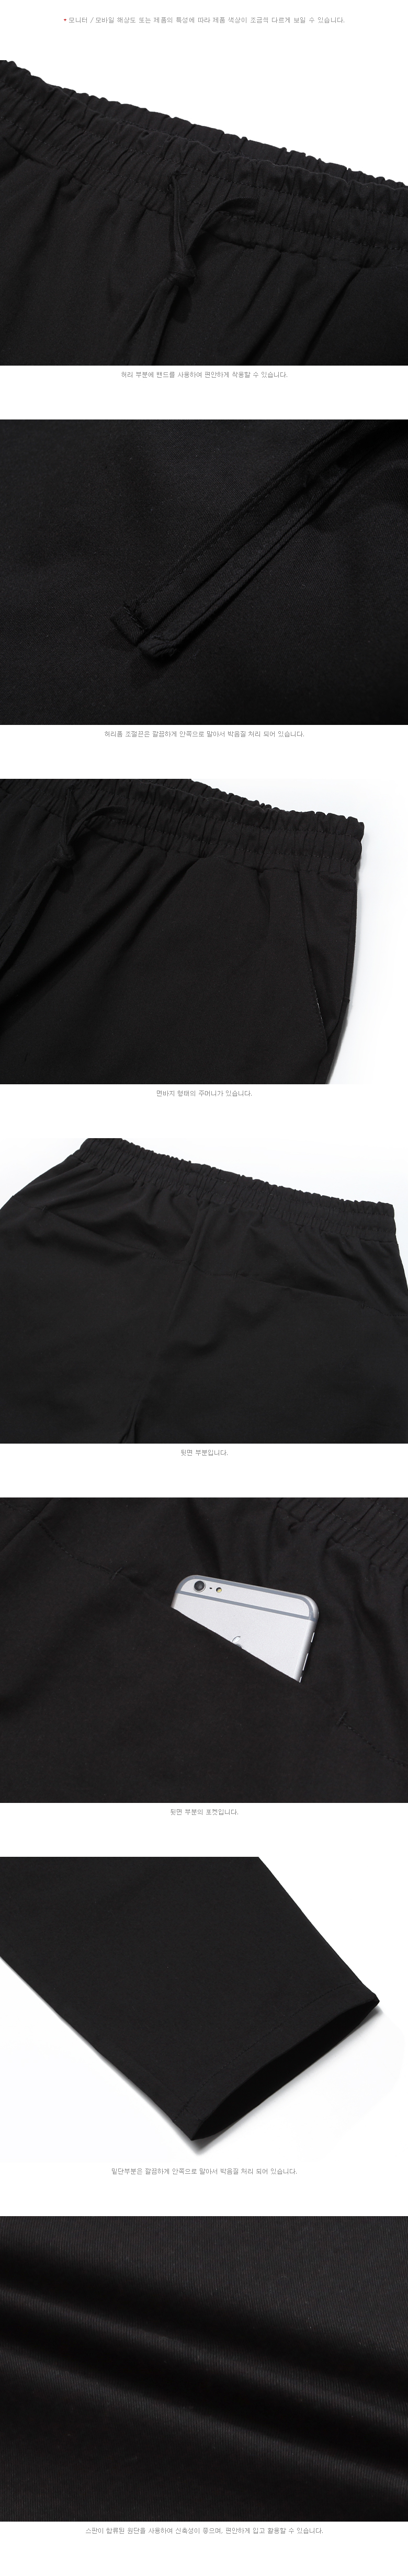 cropbangpants_detail_black_02.jpg